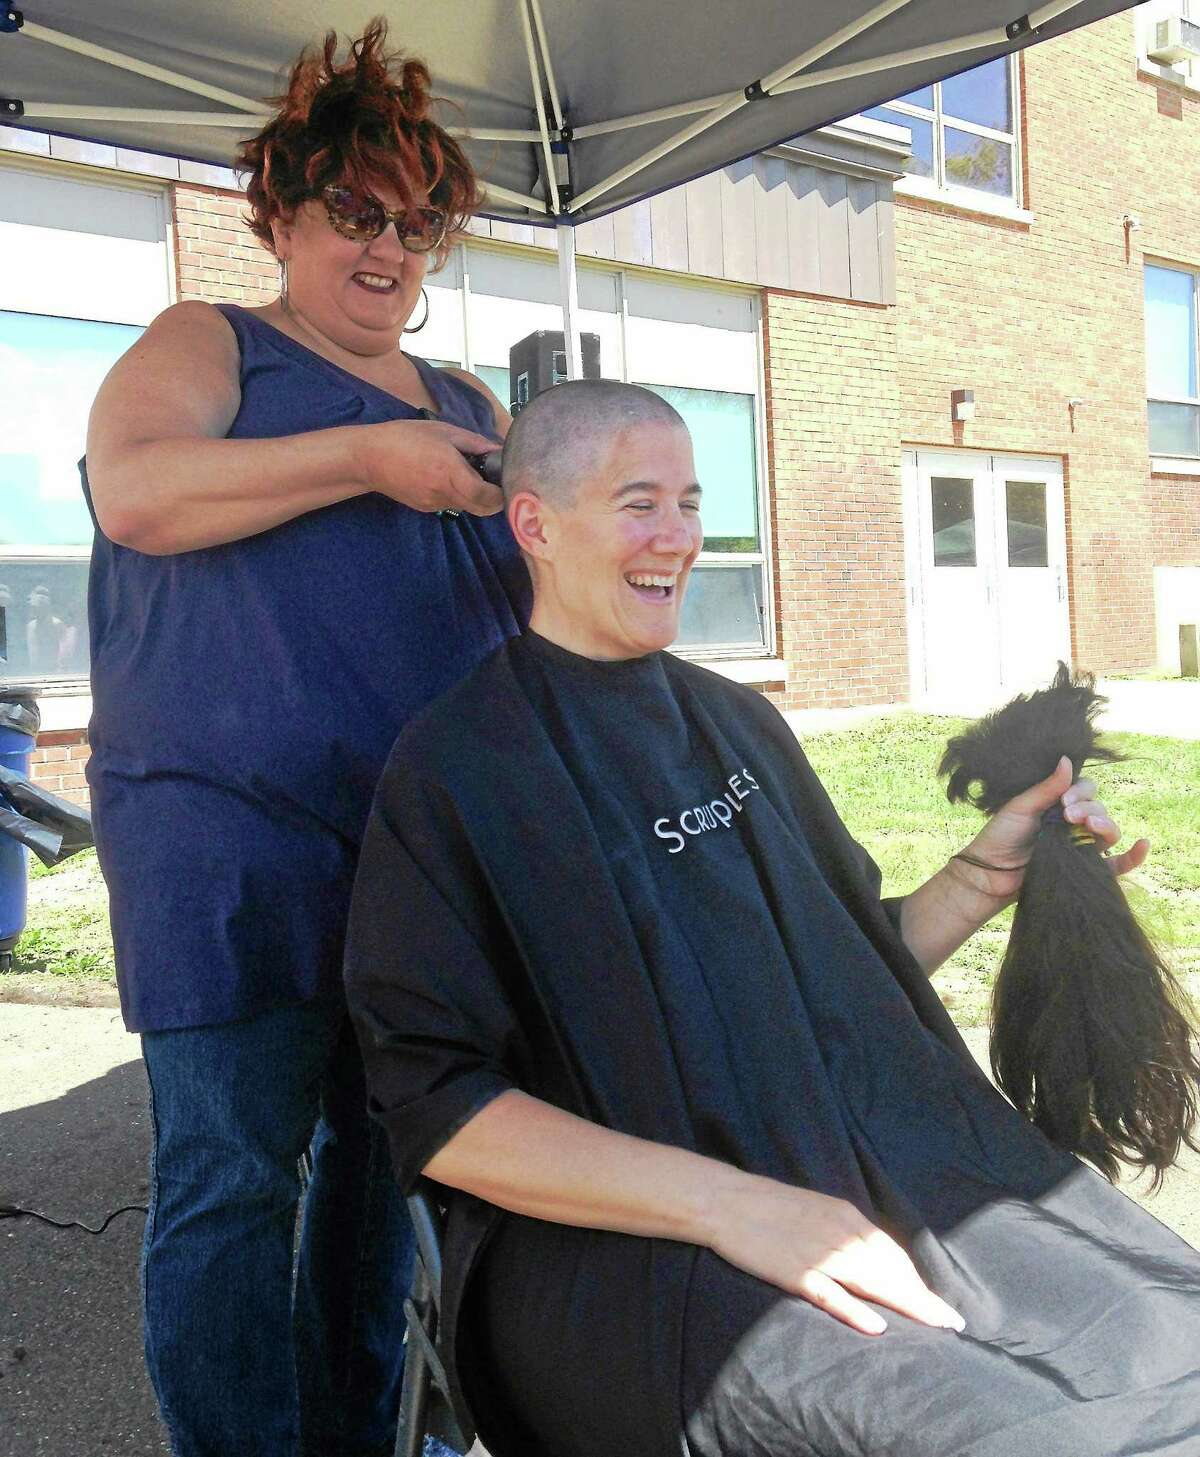 Joanne Poffenberger, a West Haven High School science teacher, holds the hair that stylist Teddi McKenna, of Teddi & Archell a Salon in West Haven, shaved off her head at Sundayís Westie Day of Hope fundraiser at West Haven High School.